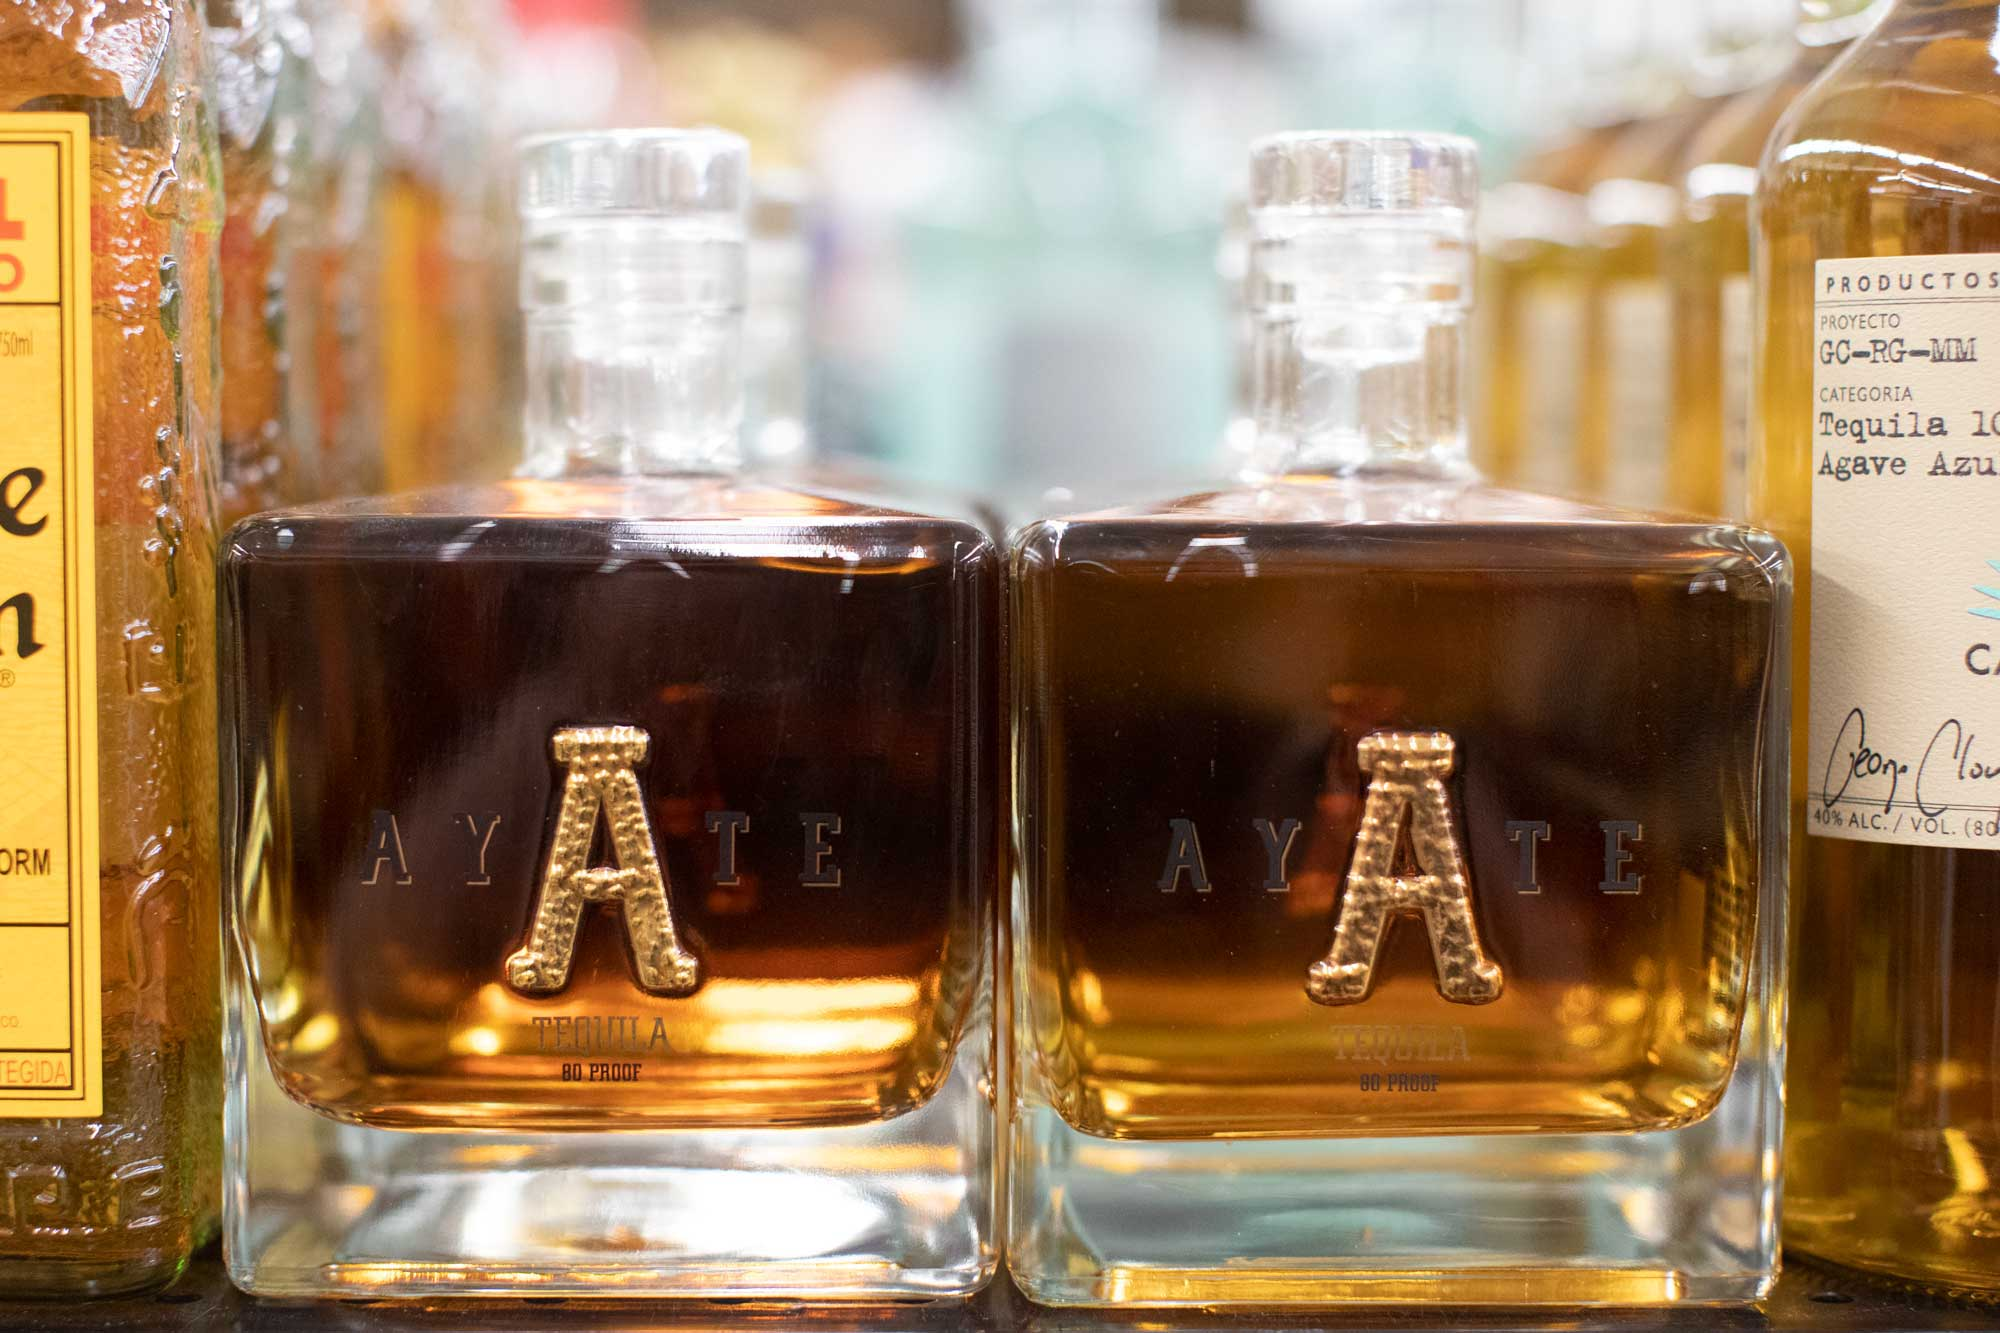 Ayate Tequila